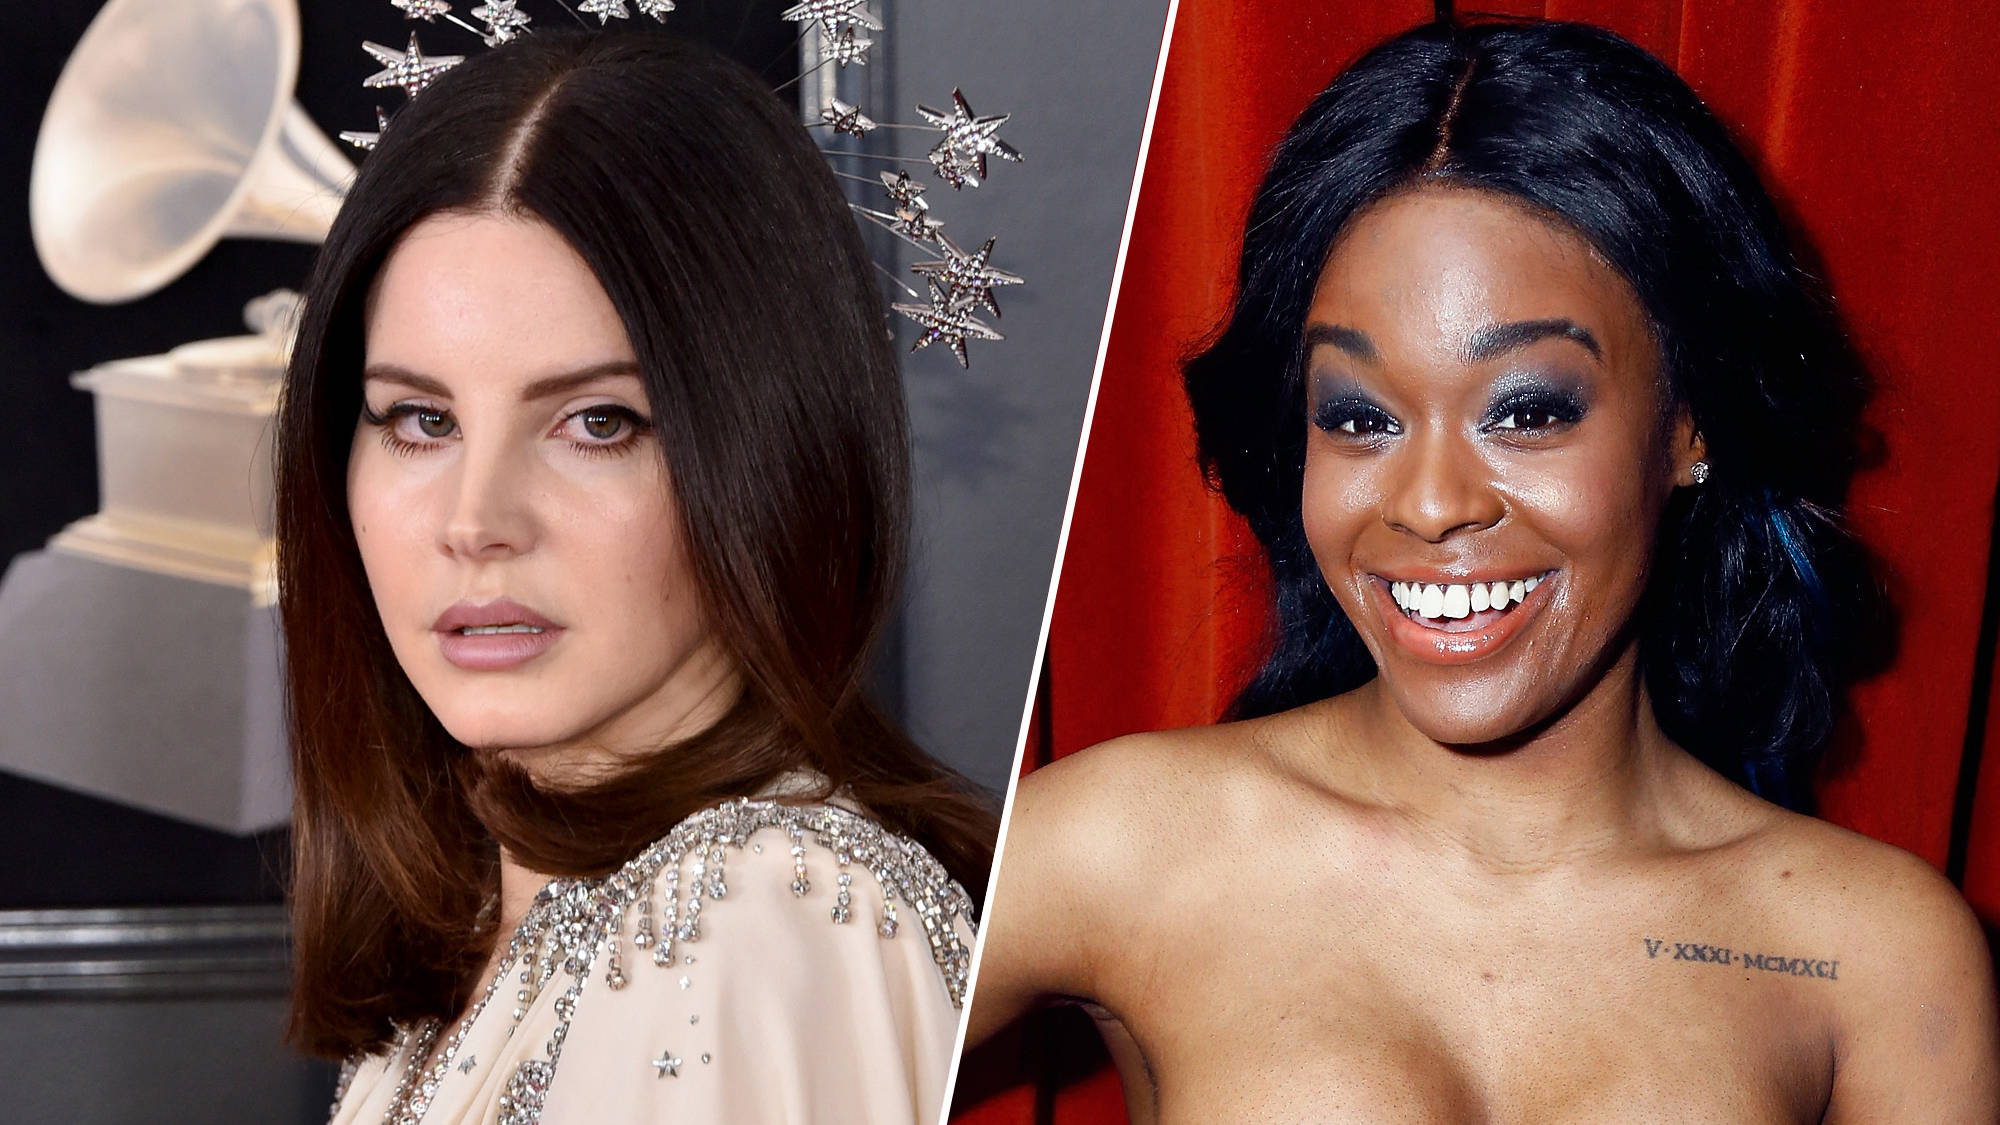 Lana Del Ray Azealia Banks Savage Each Other In Wild Twitter Beef Capital Xtra